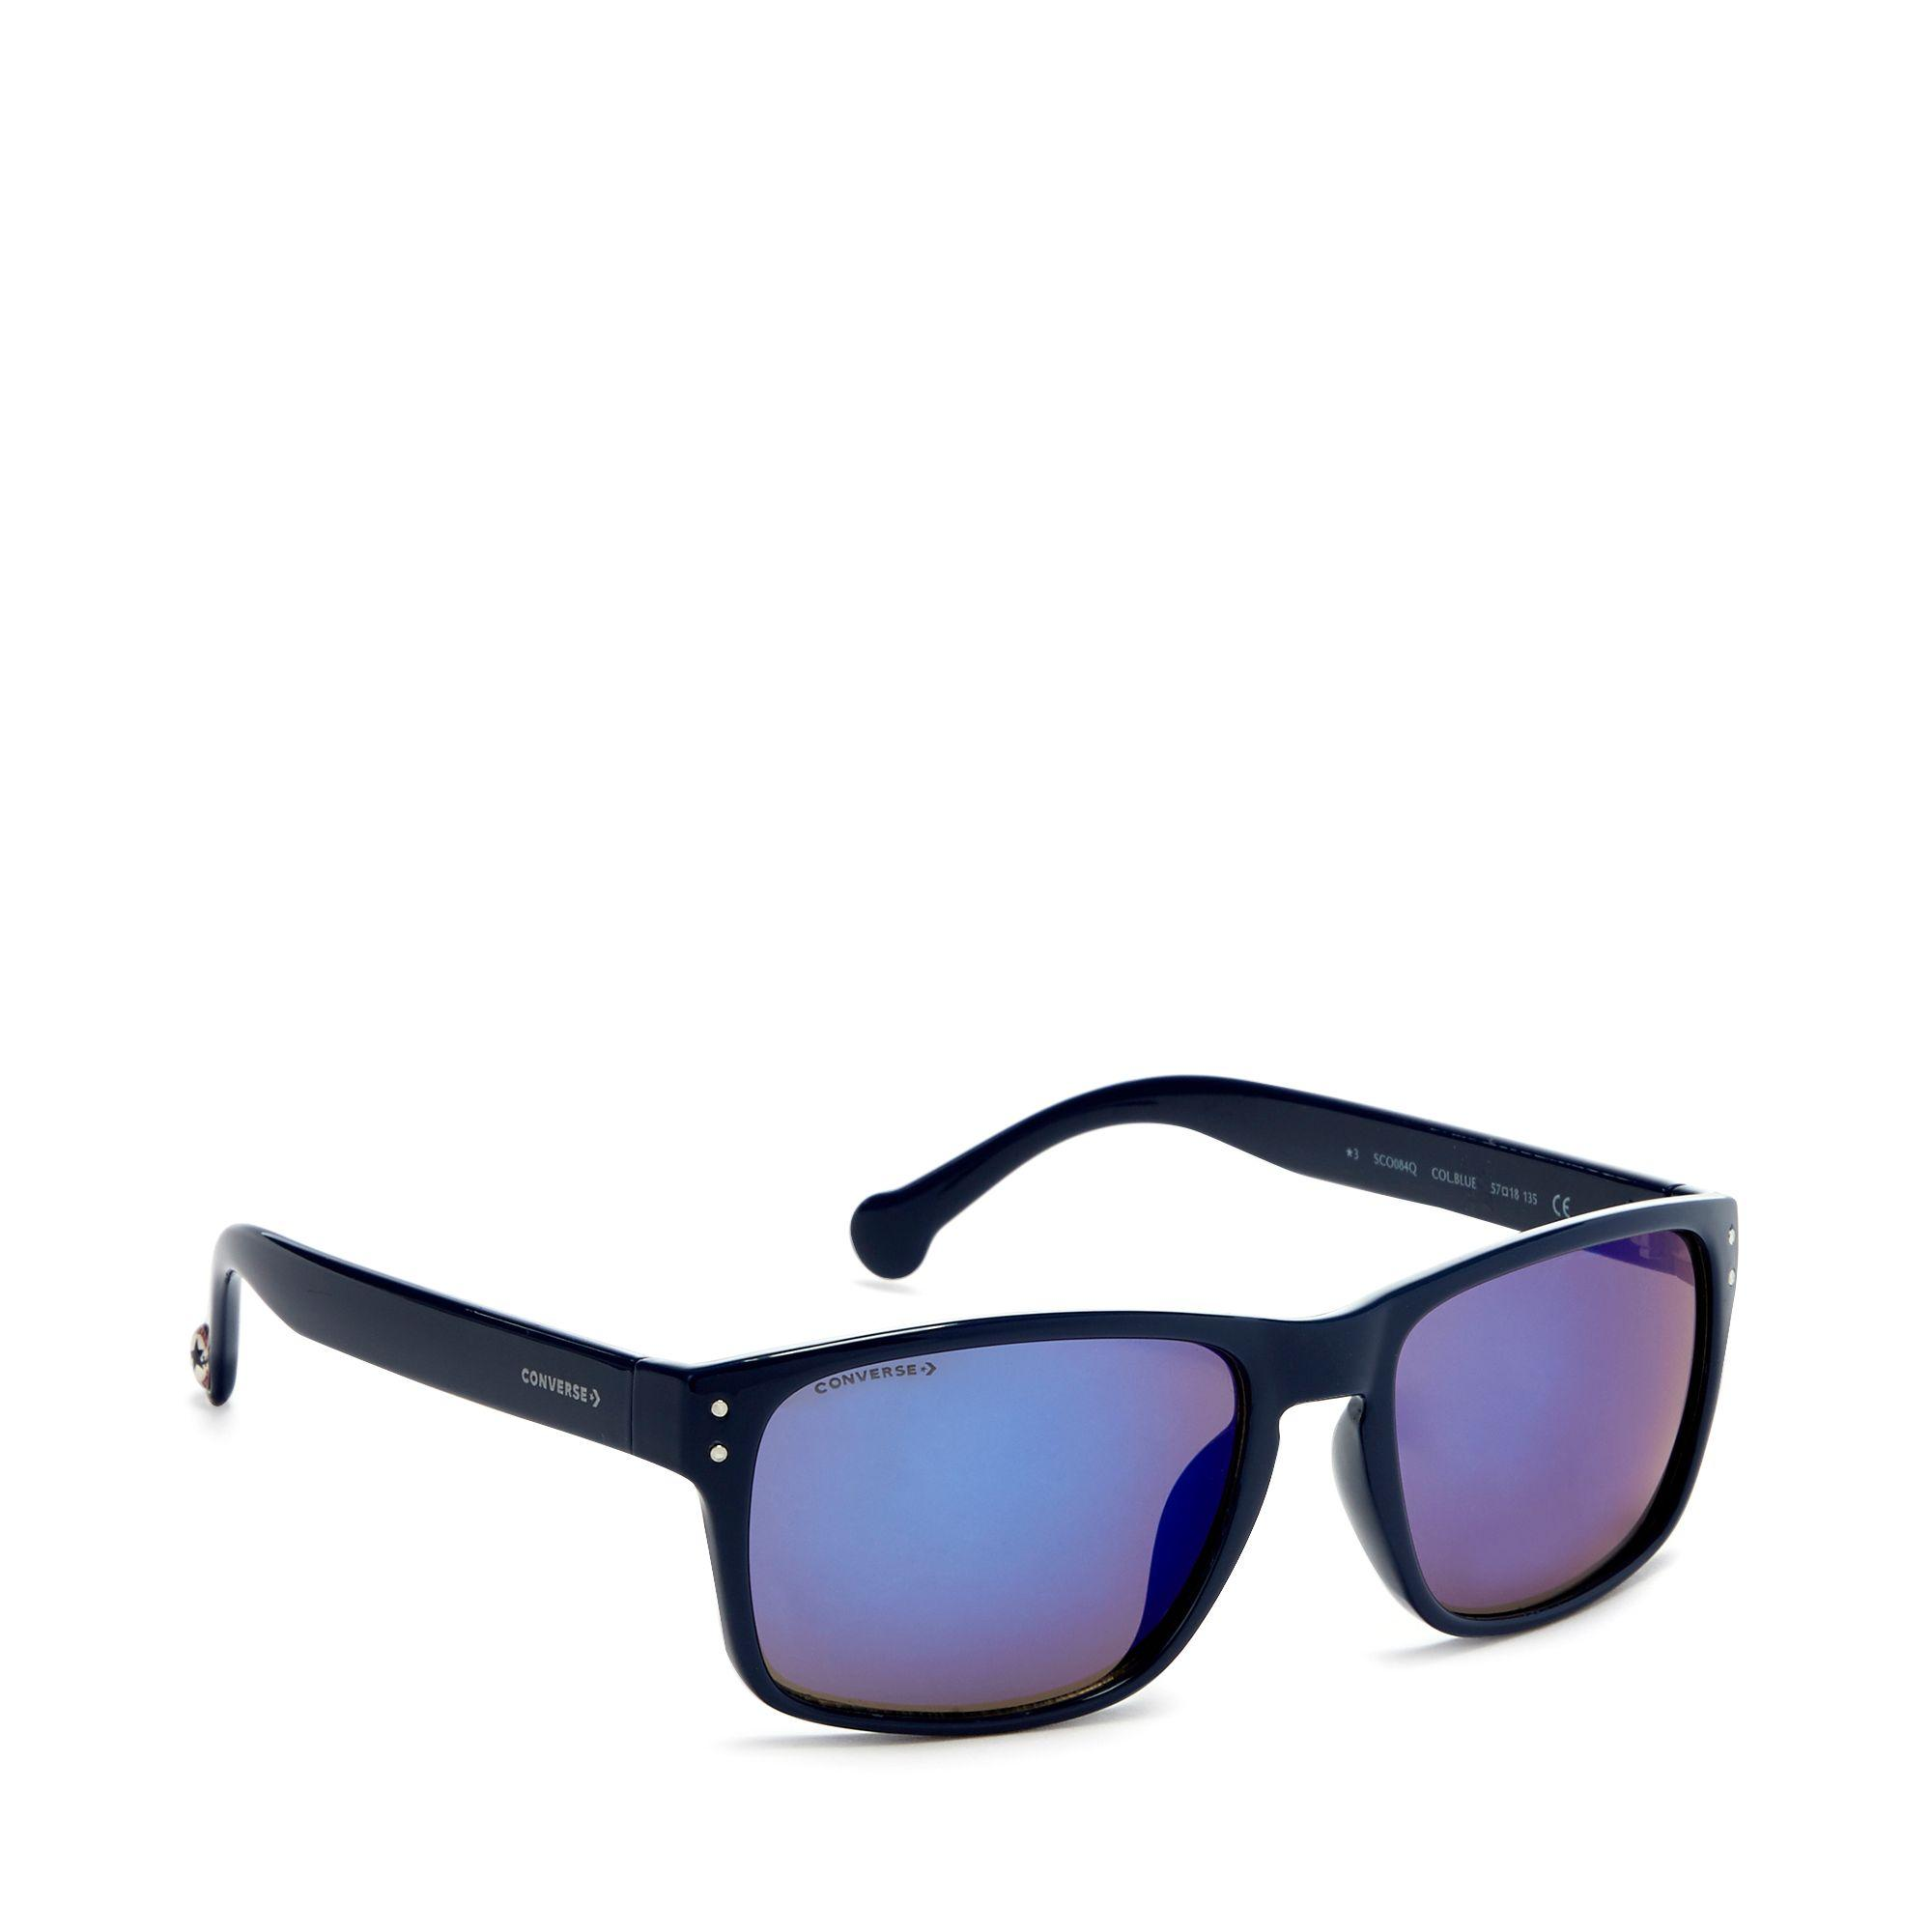 9bb7a10428139 Converse Navy Plastic Square Sunglasses in Blue for Men - Lyst